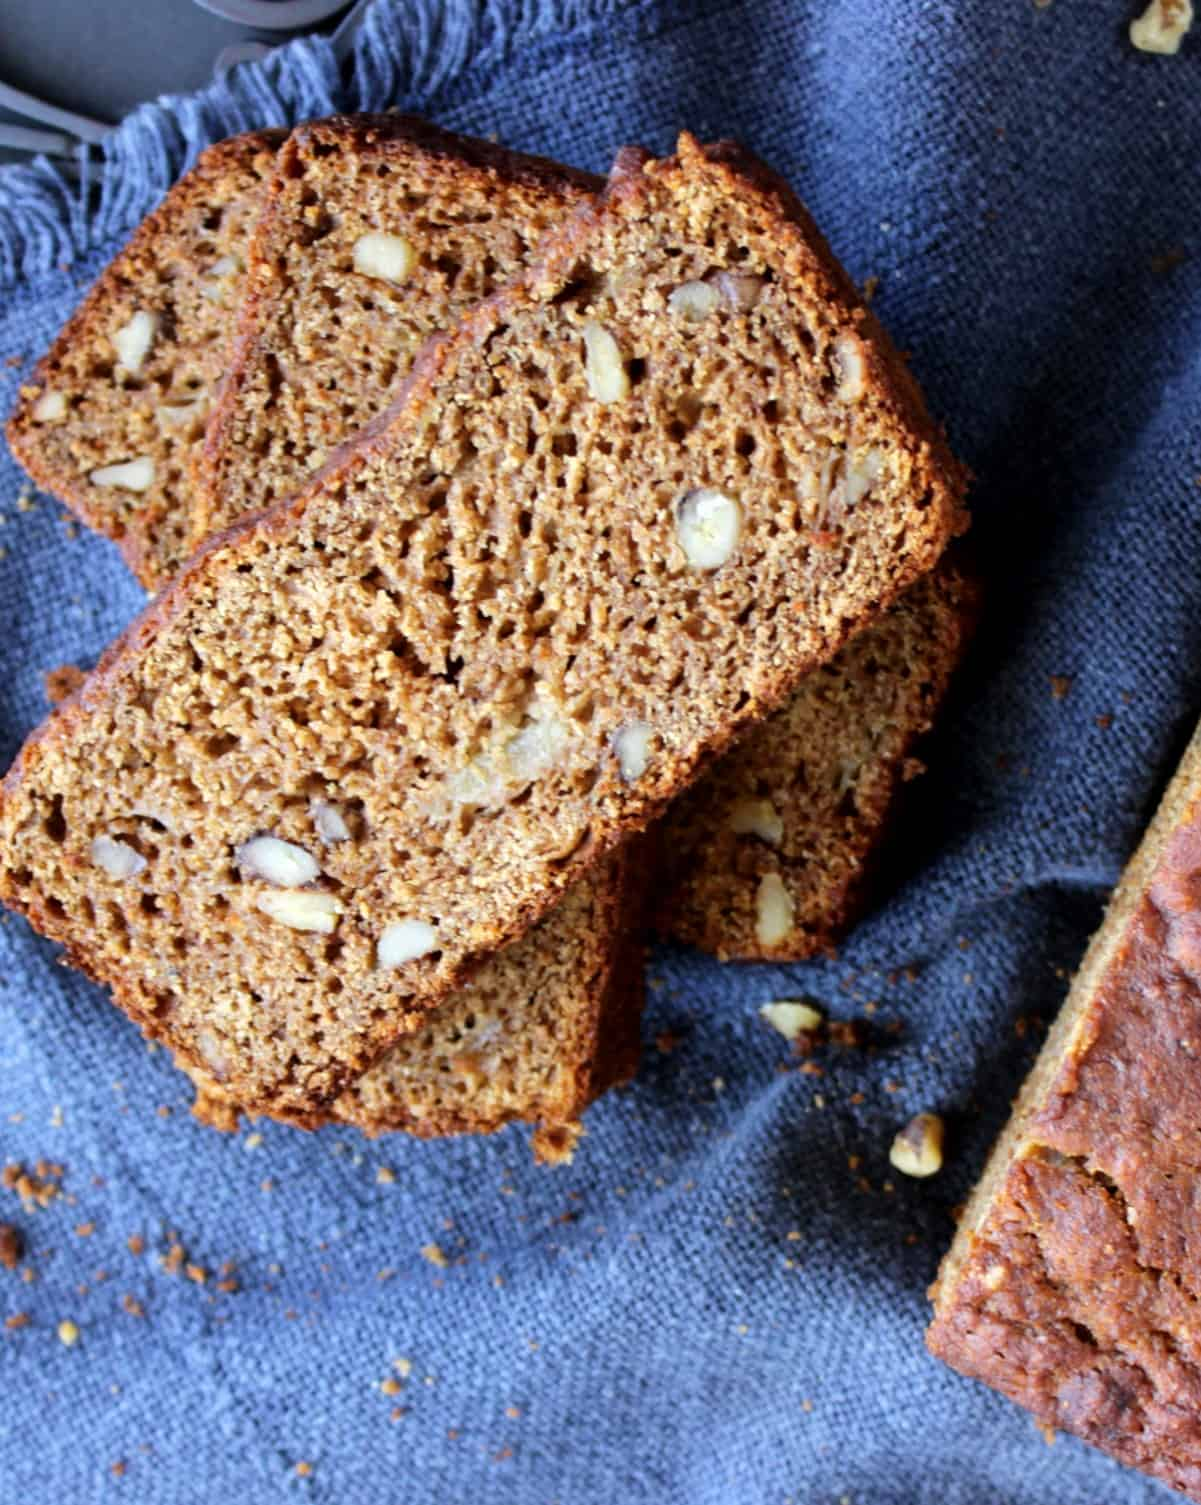 Overhead view of a close-u of slices a rich brown pear bread.